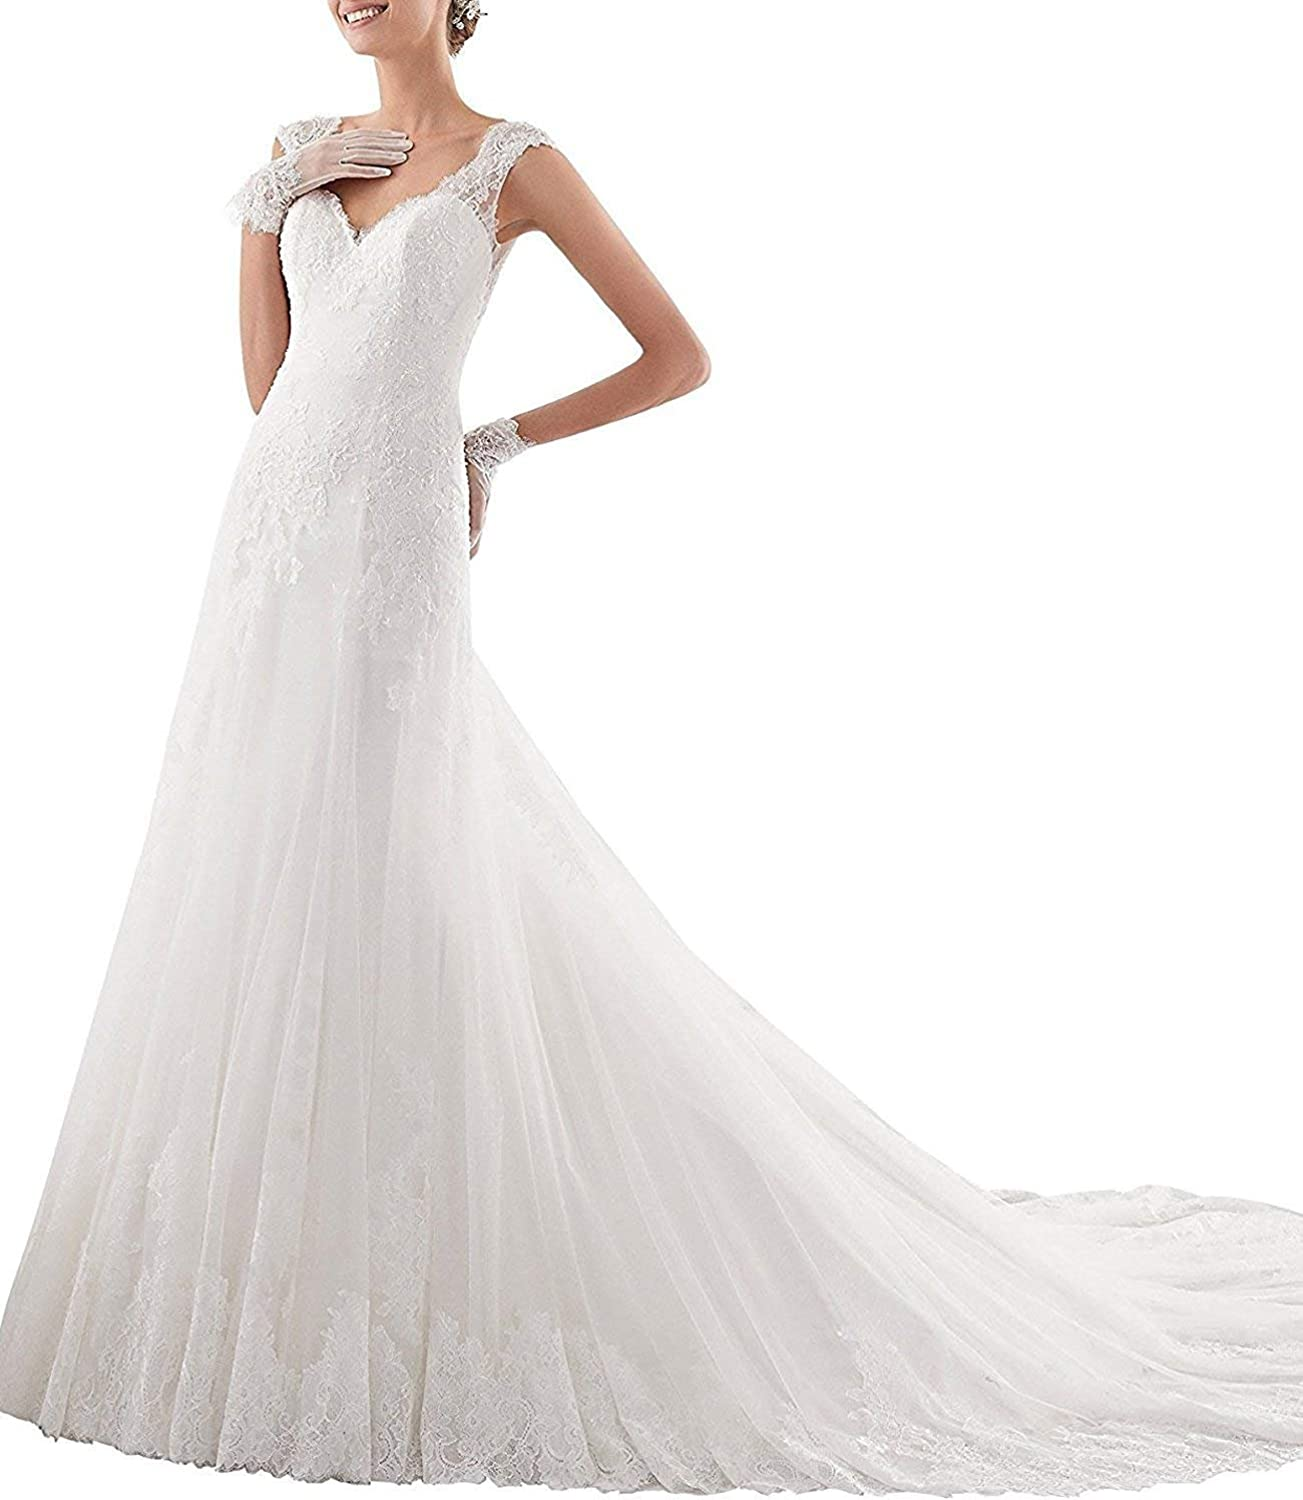 Yilian Women's Lace Applique Wedding Dresses for Brides 2018 with Train See Through Back Gowns